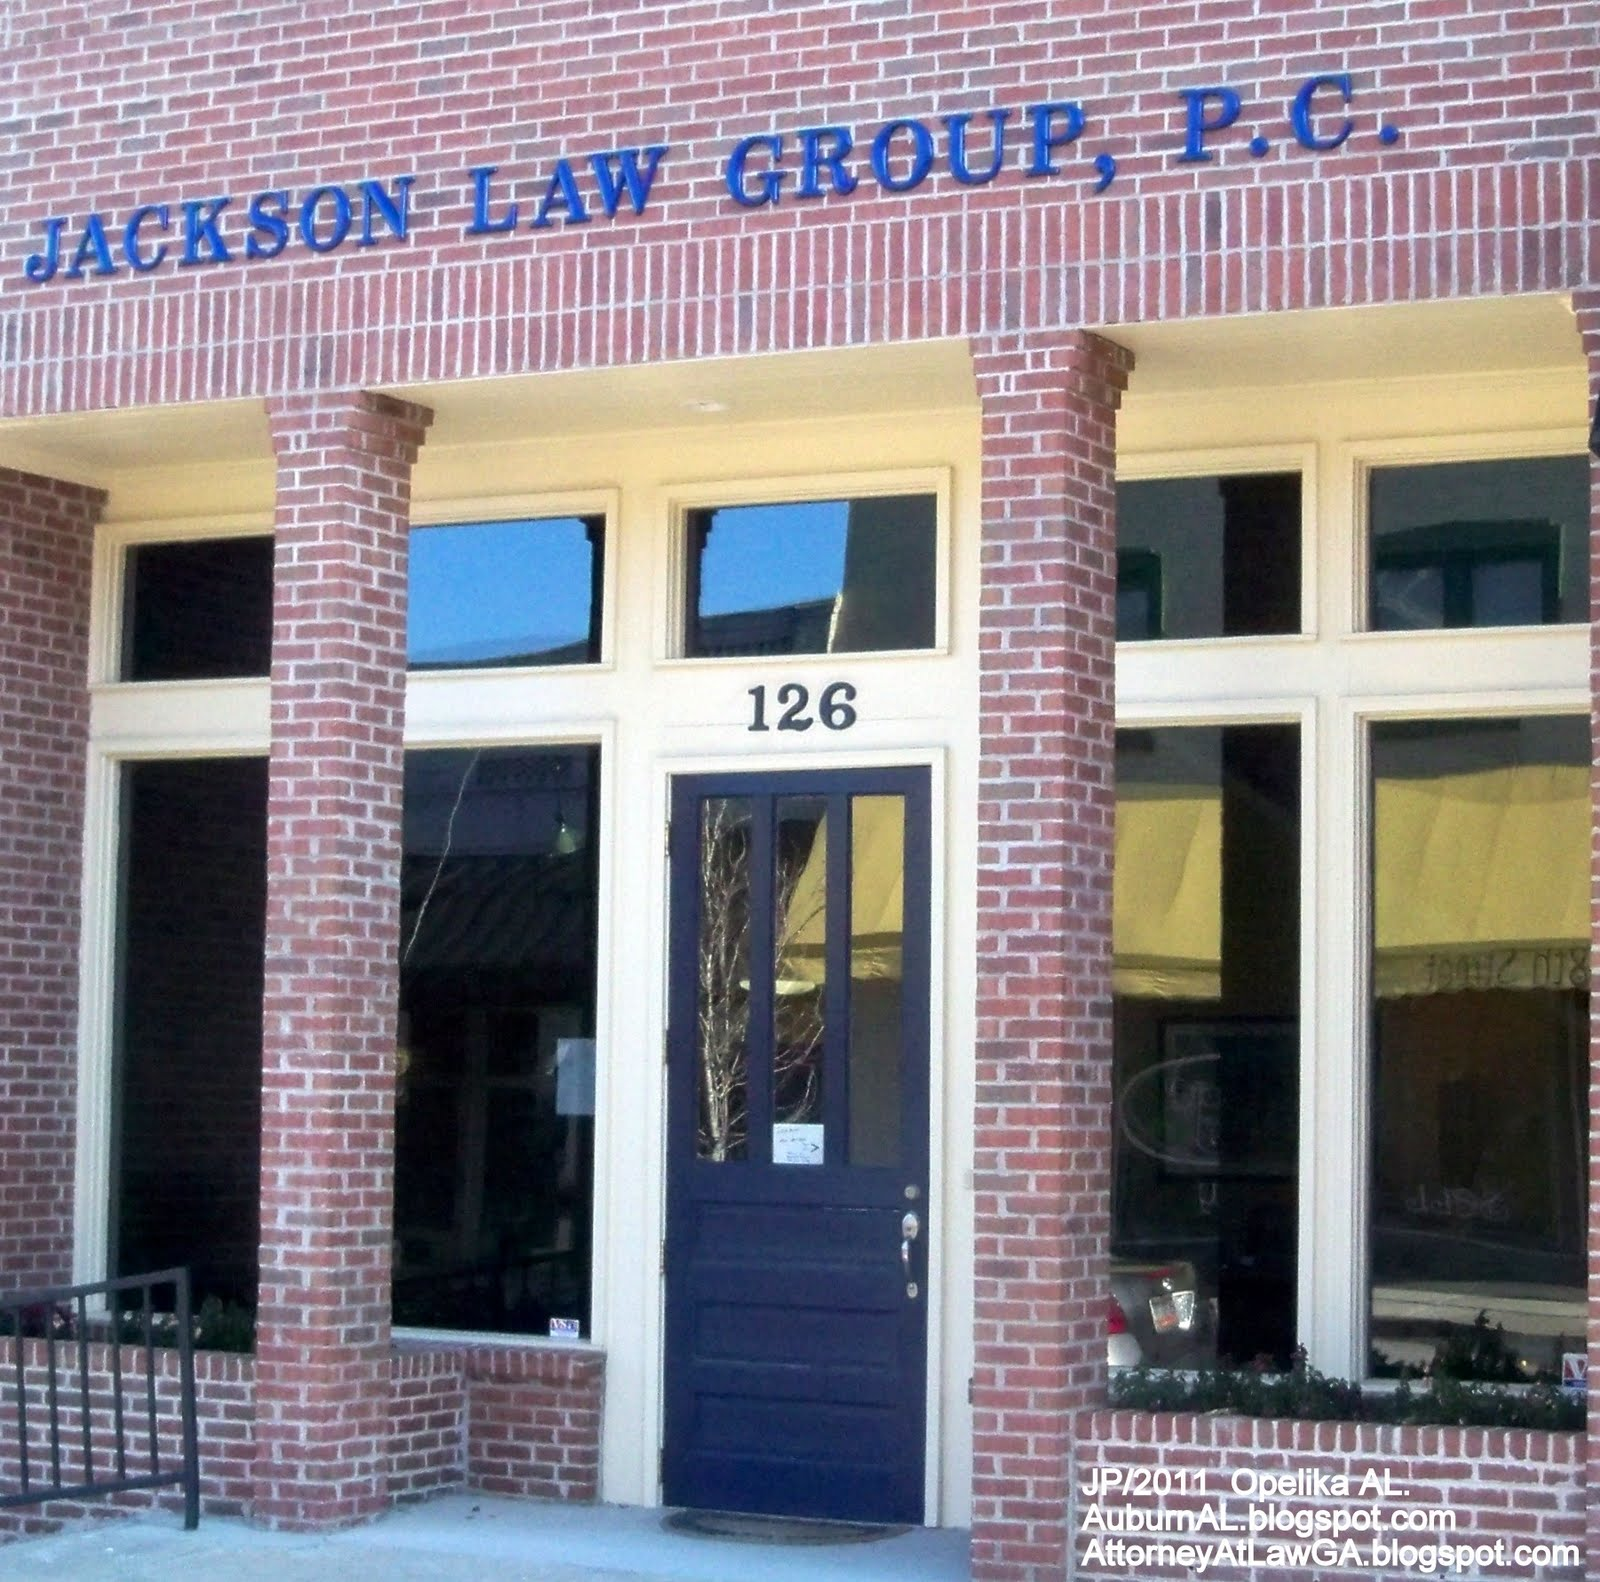 LAW GROUP PC. OPELIKA ALABAMA Jackson Law Group Attorneys At Law ...